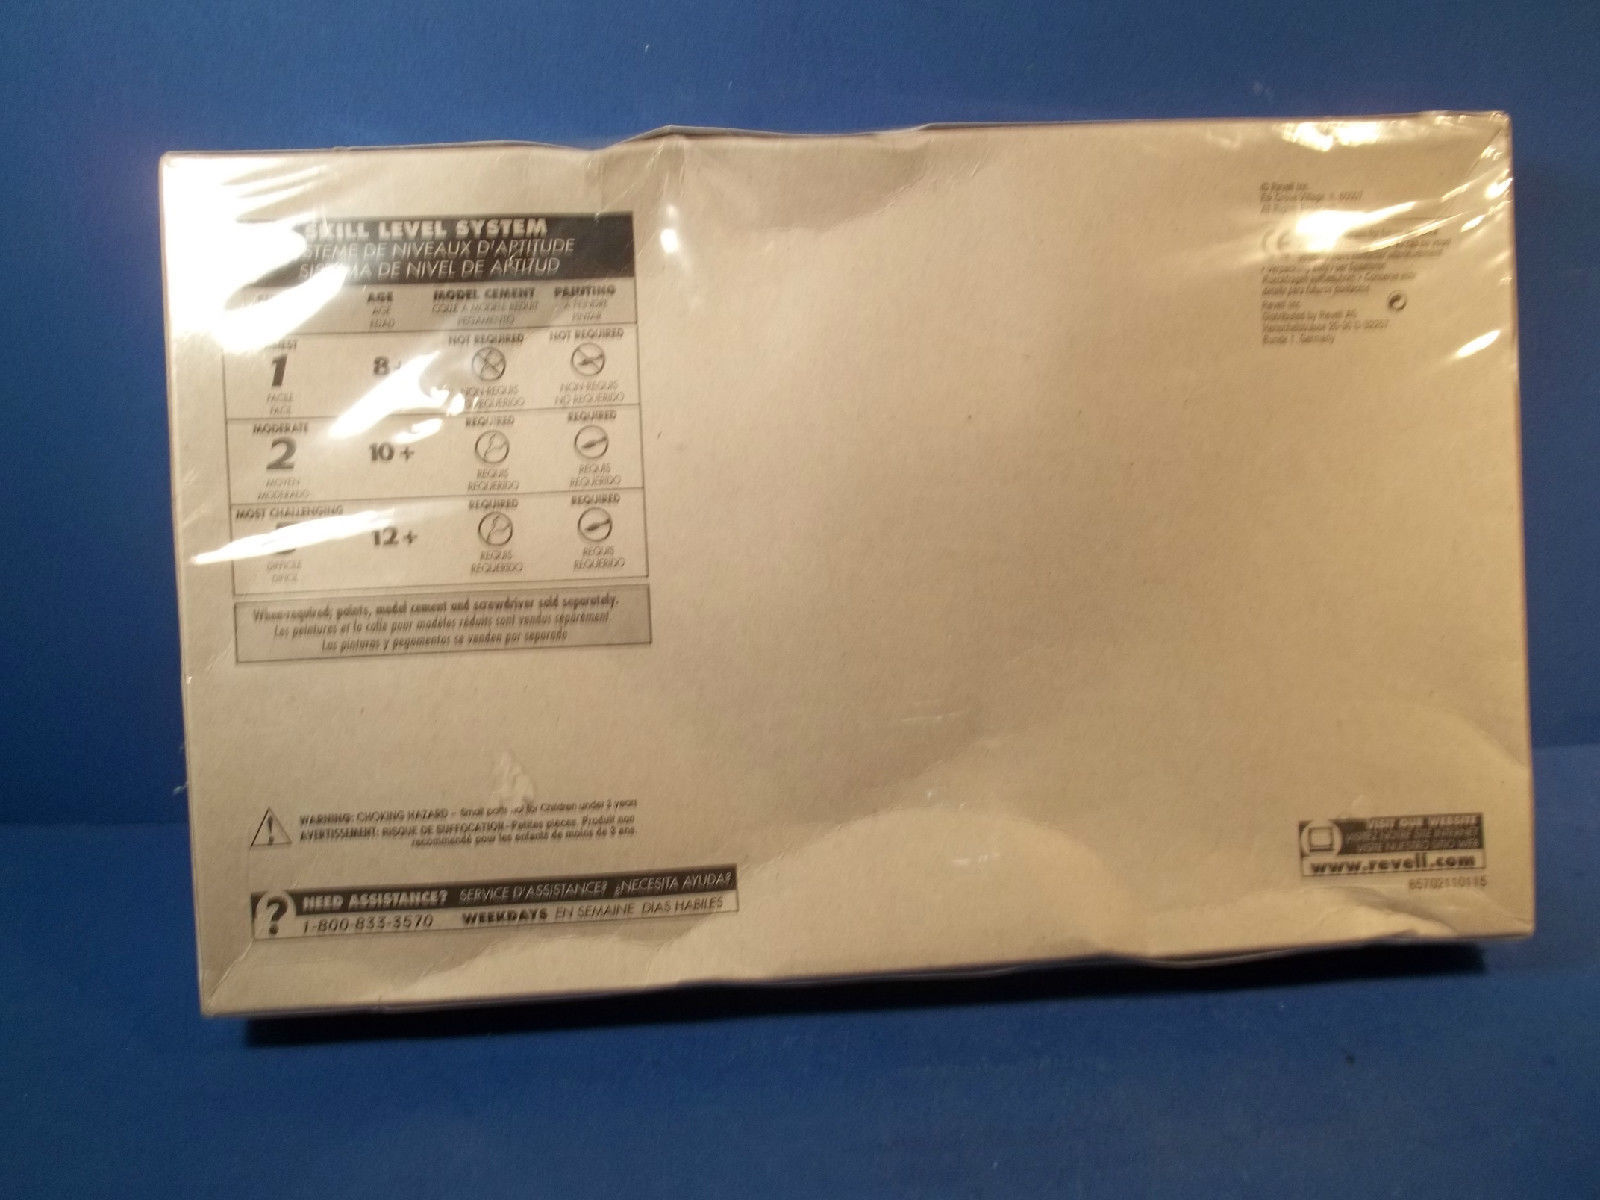 REVELL 1/48 Scale P-51D Mustang Model Kit NO. 85-5241 SEALED IN PLASTIC